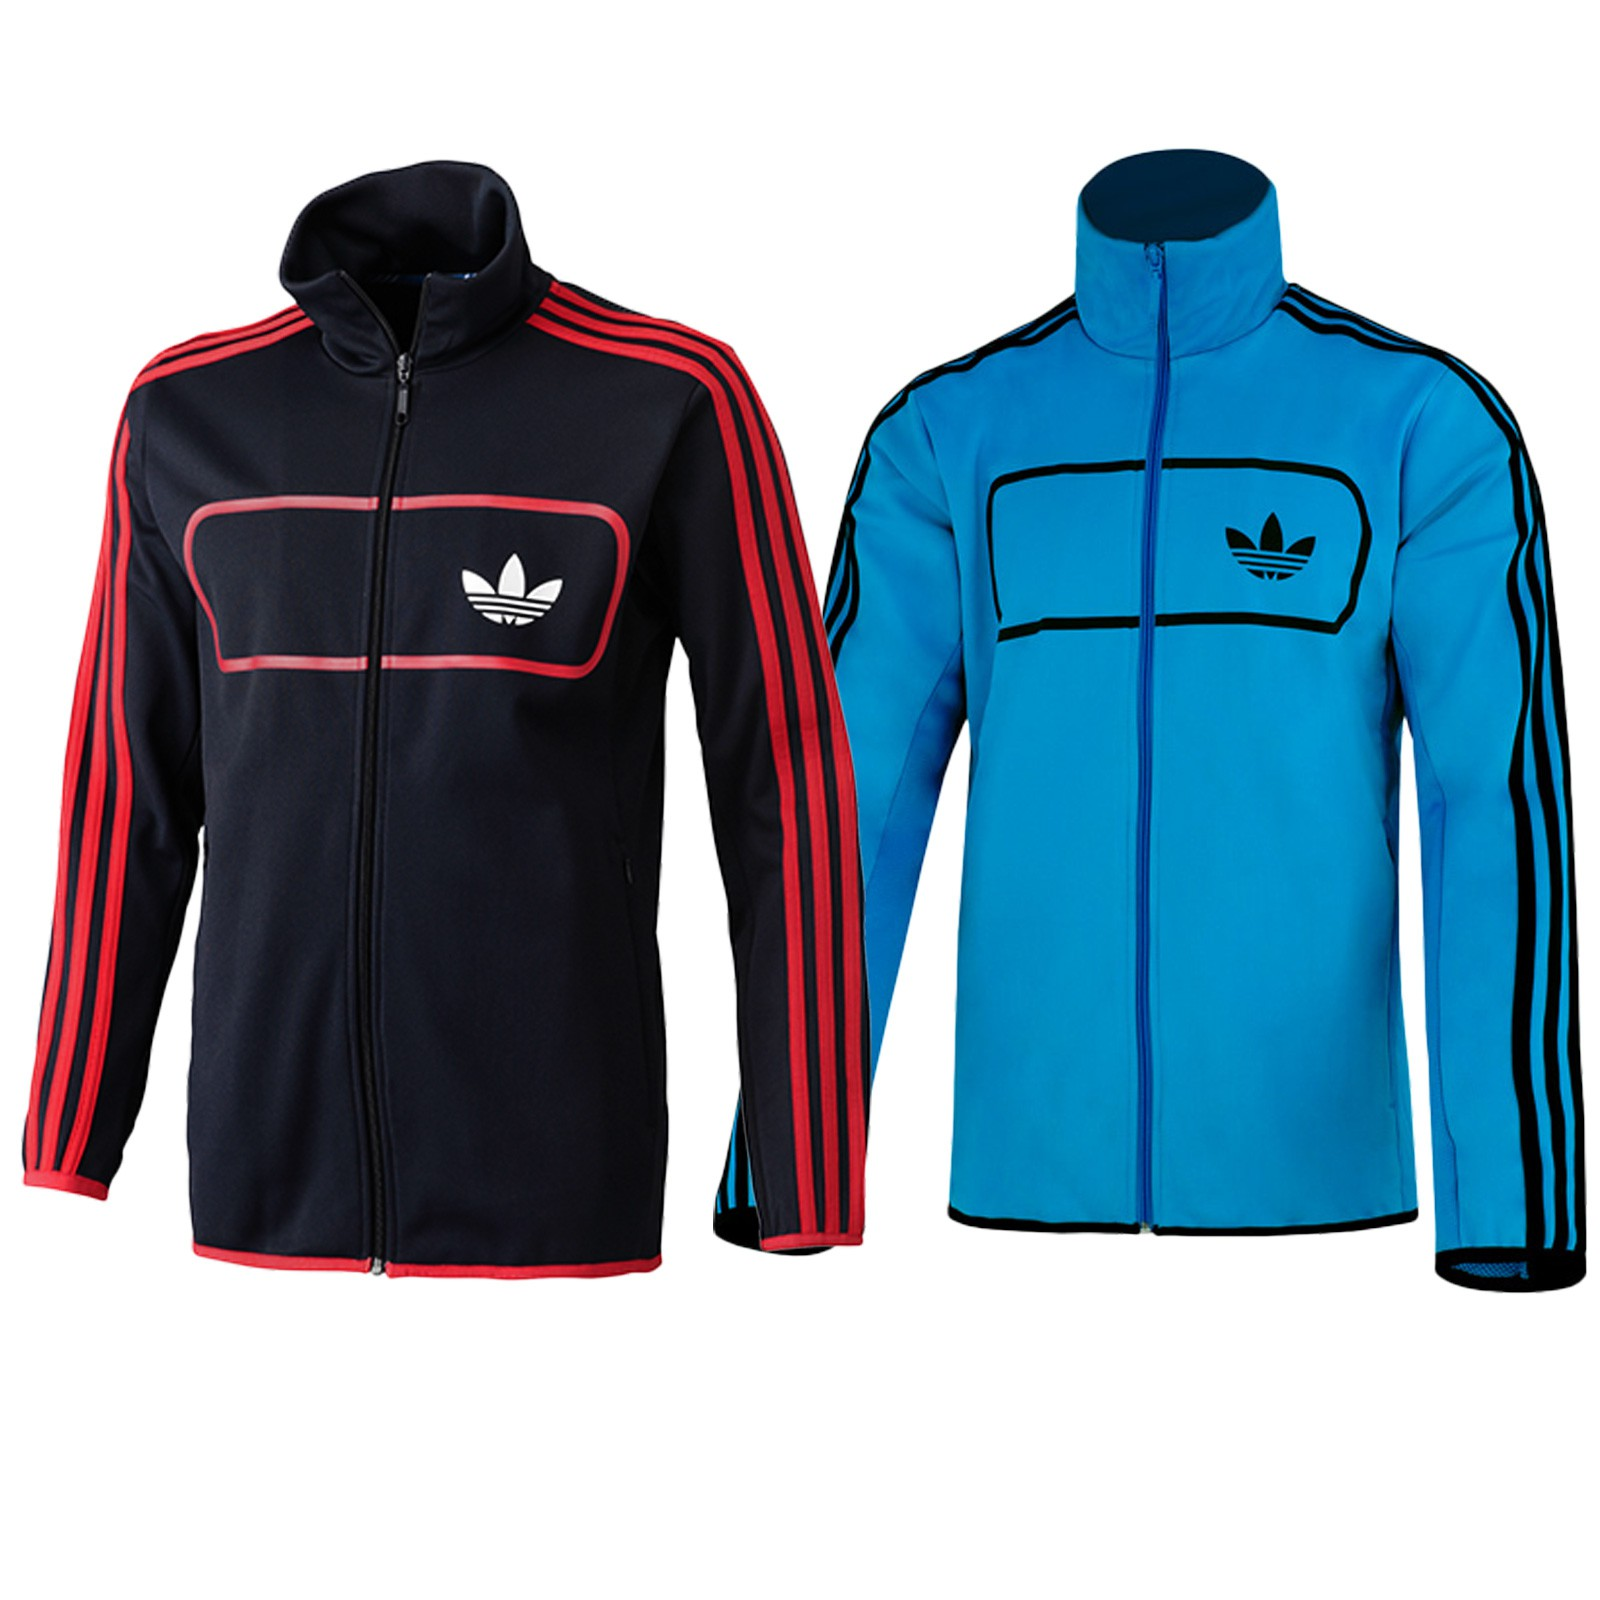 about adidas originals street diver tt herren retro jacke firebird. Black Bedroom Furniture Sets. Home Design Ideas